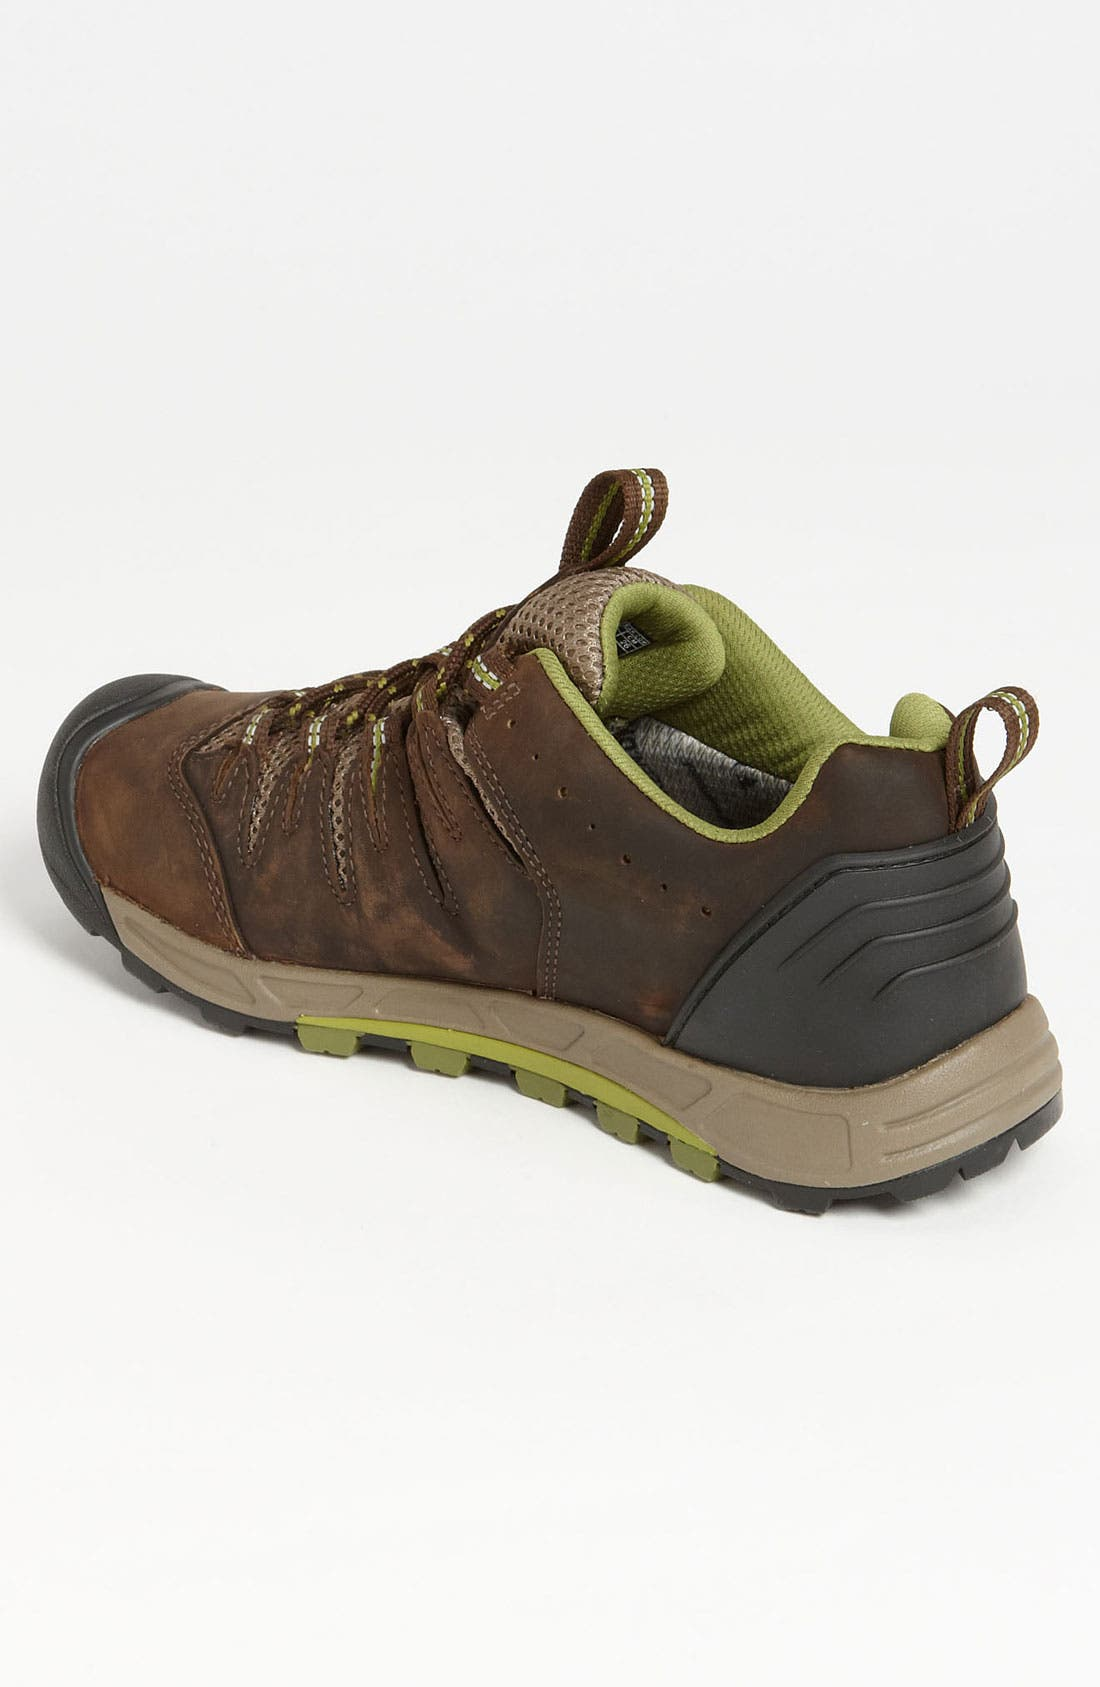 Alternate Image 2  - Keen 'Bryce' Hiking Shoe (Men)